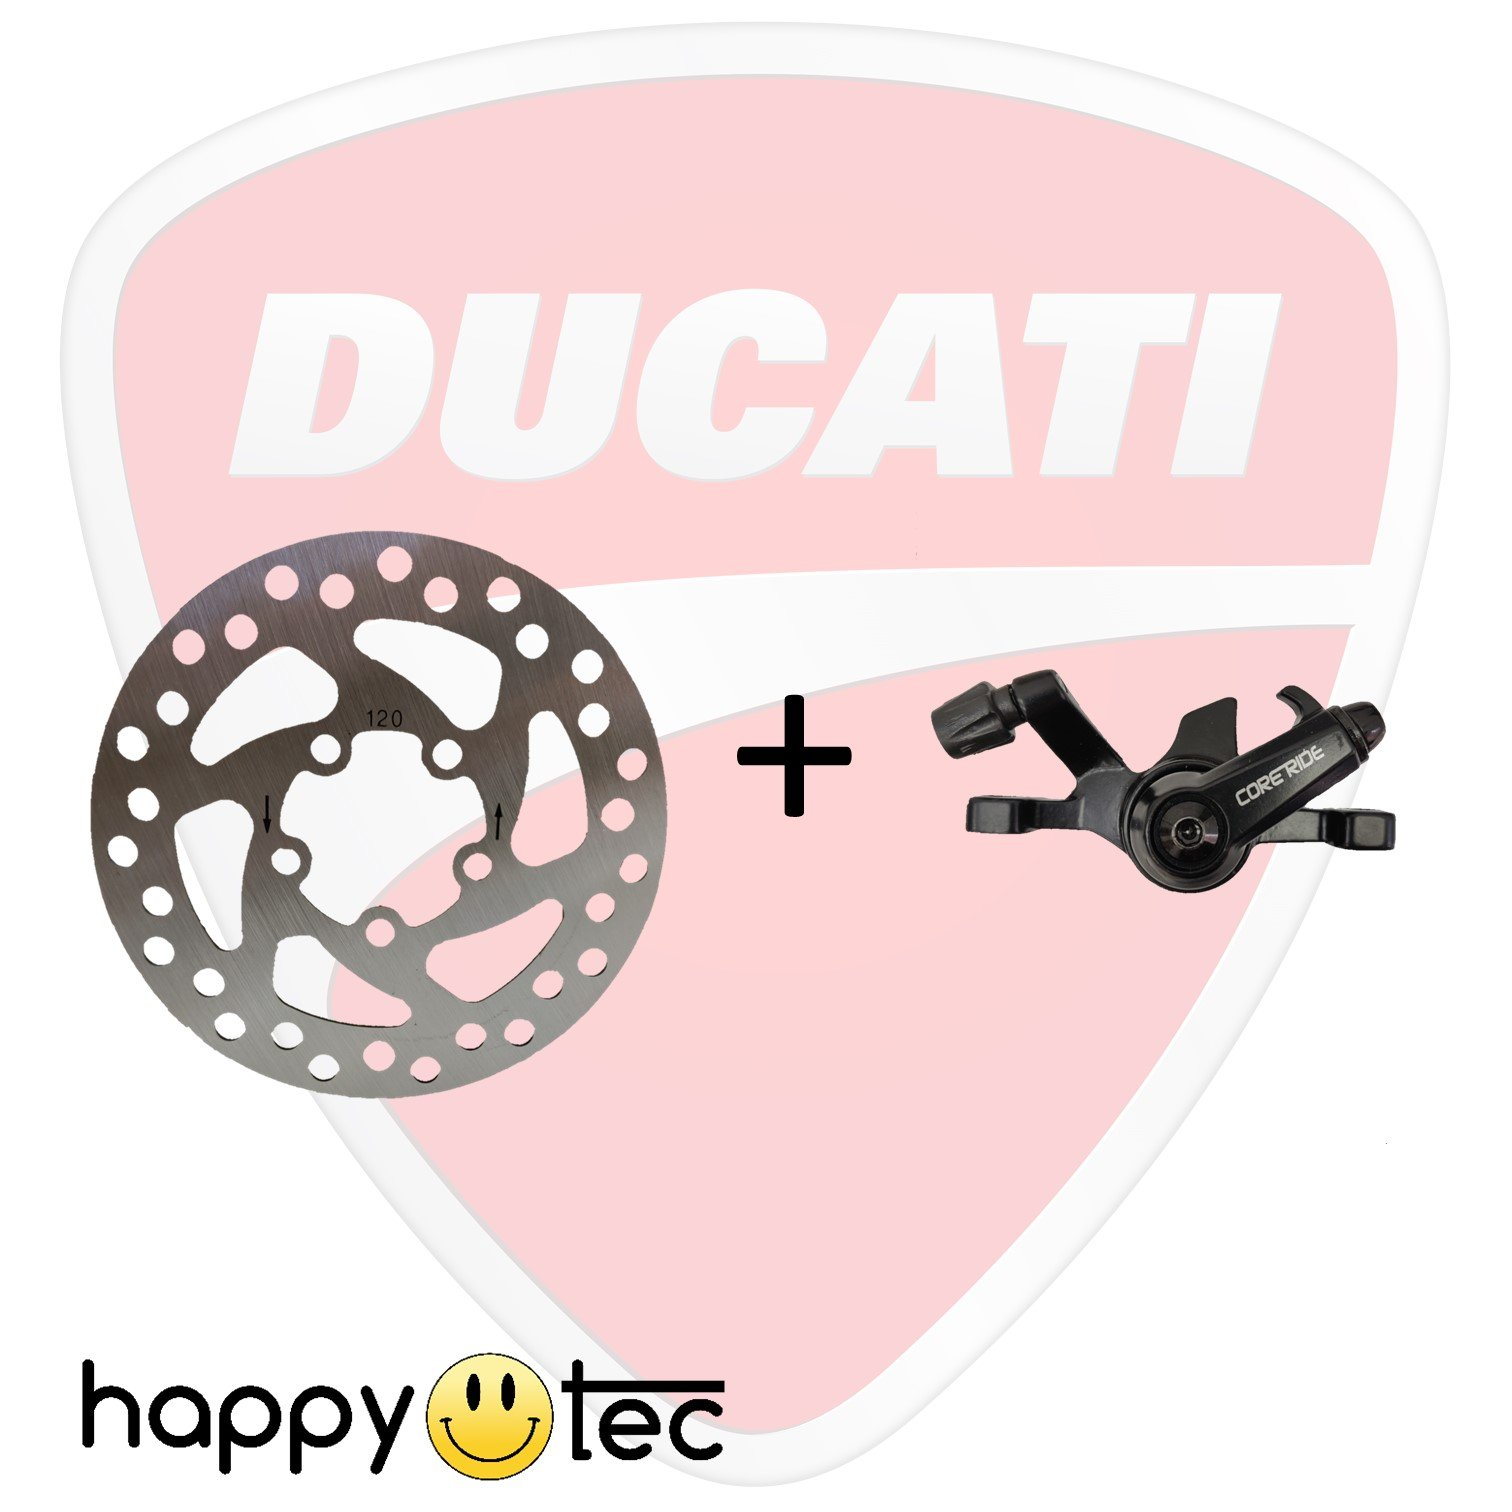 Kit pinza freno e disco originale per Ducati Pro-I Plus